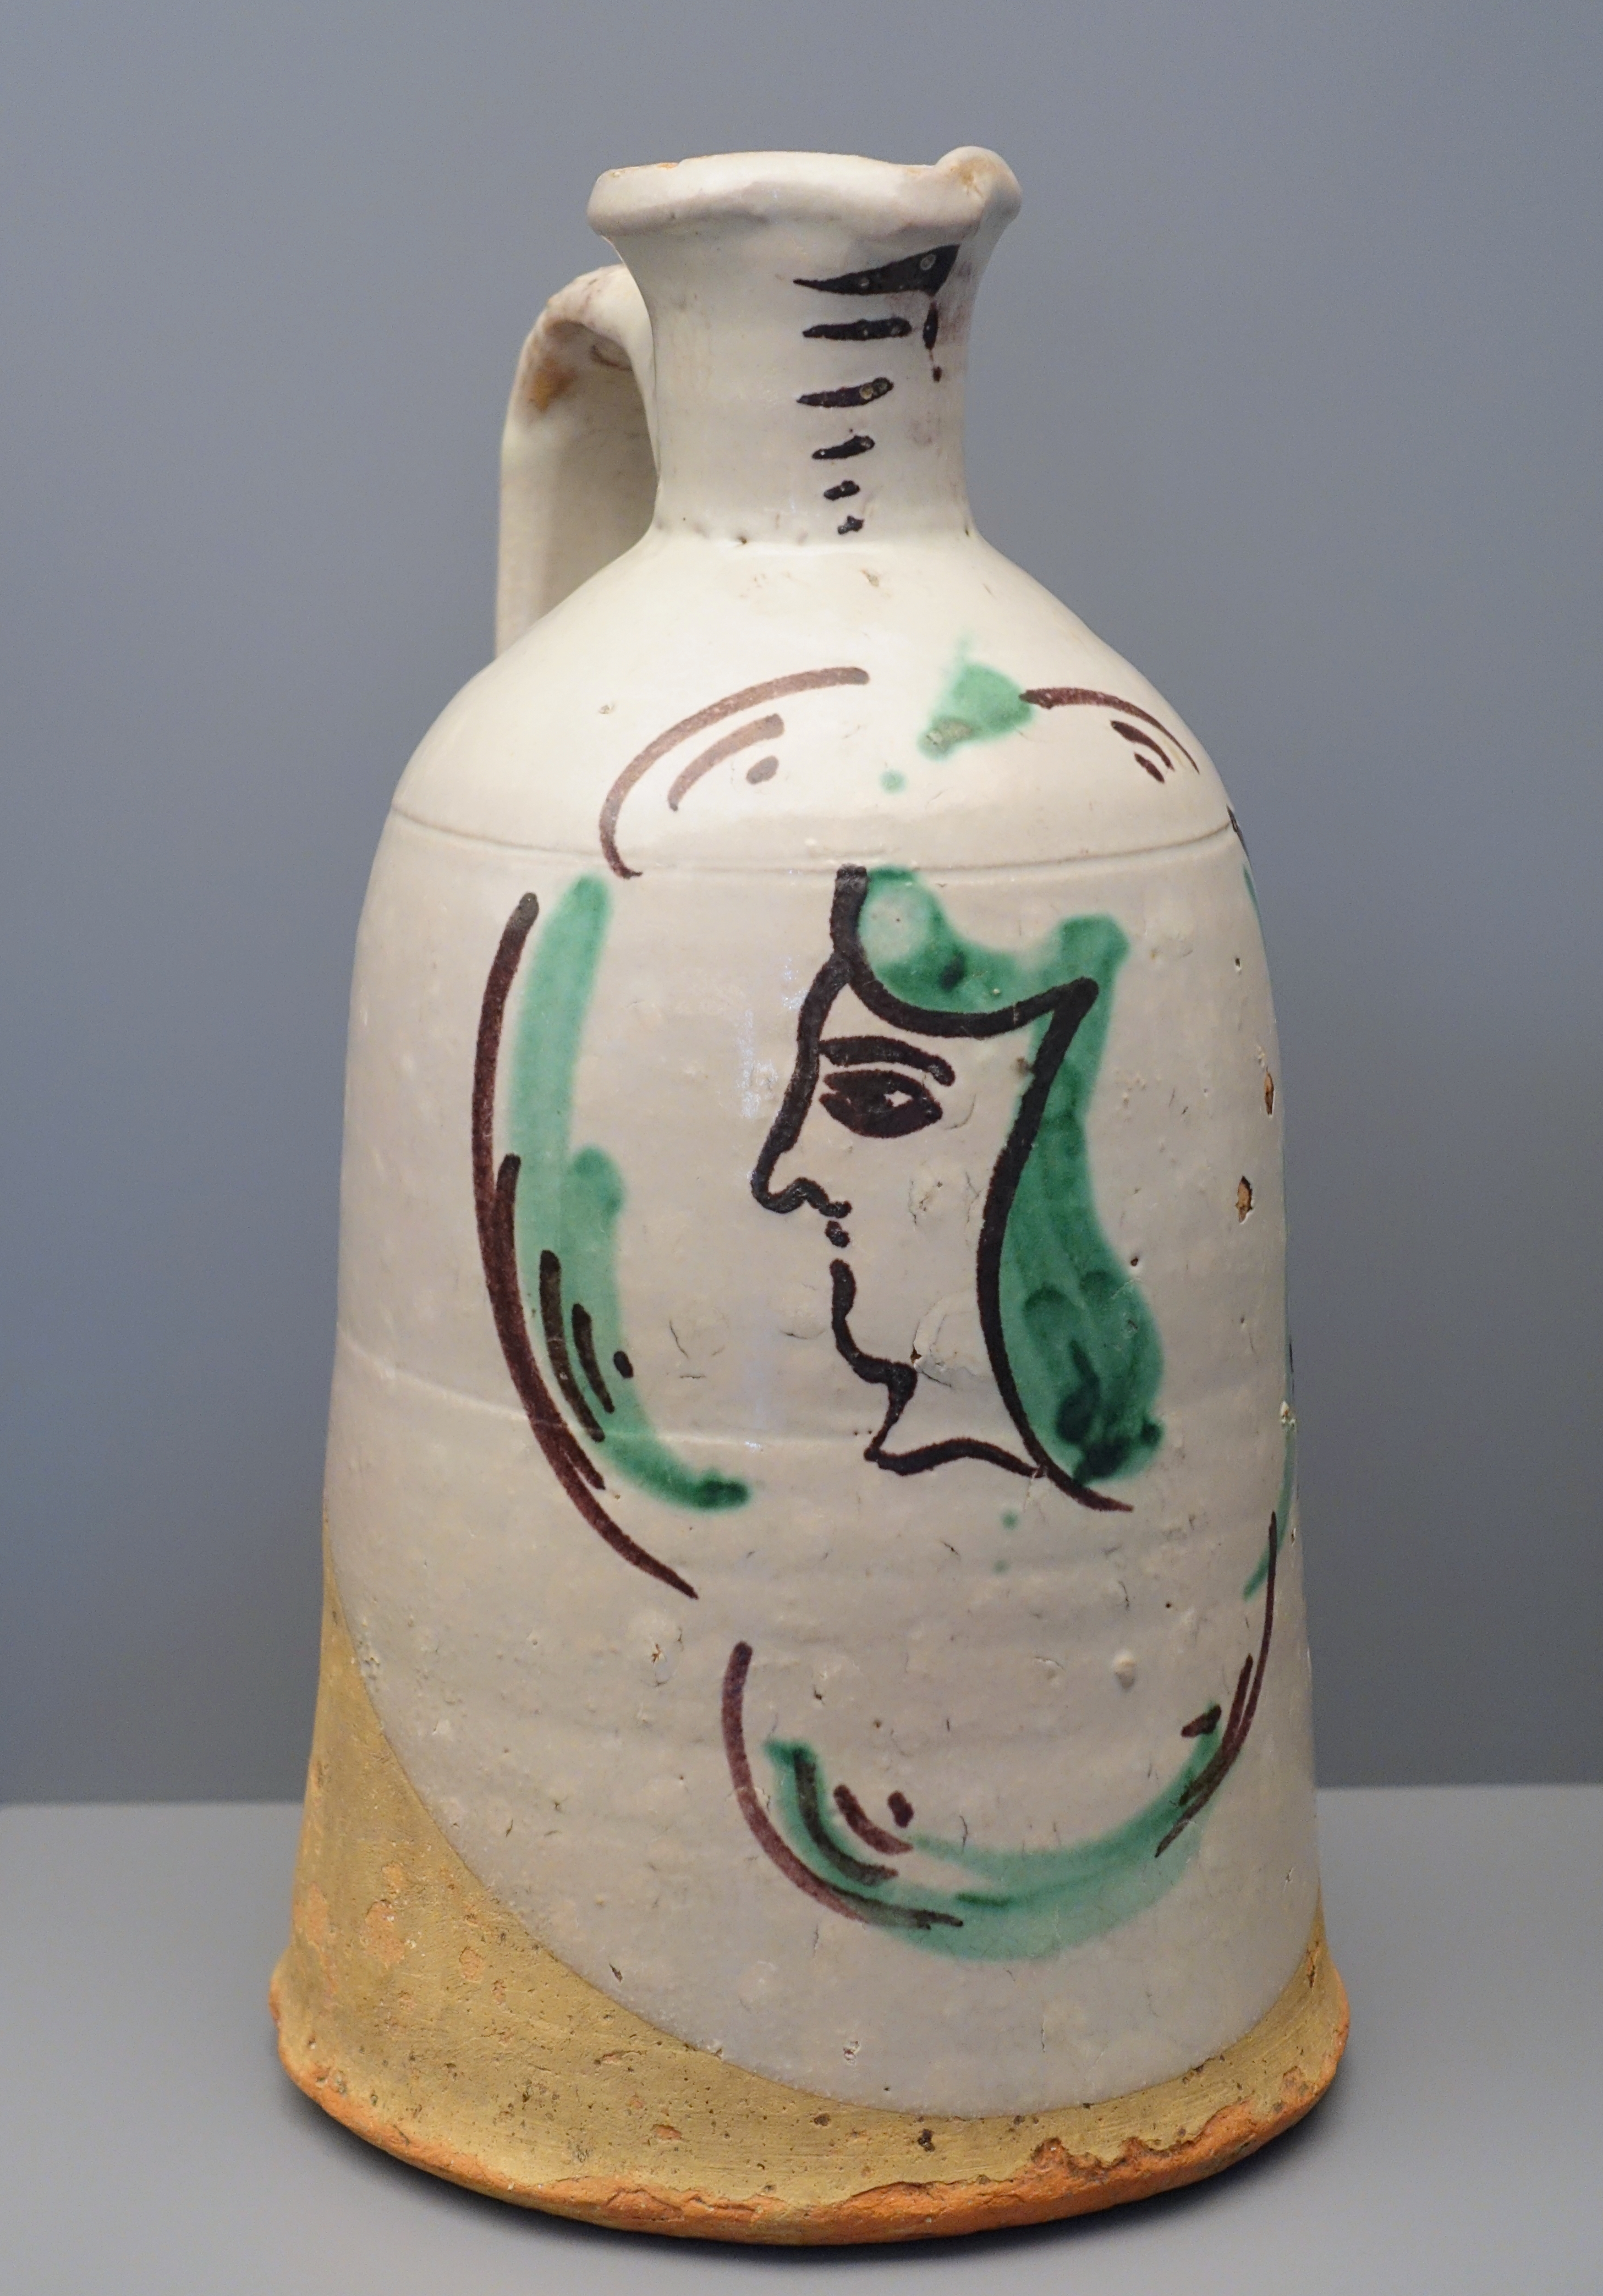 Fileolive oil bottle with womans face in profile teruel spain fileolive oil bottle with womans face in profile teruel spain 18th reviewsmspy